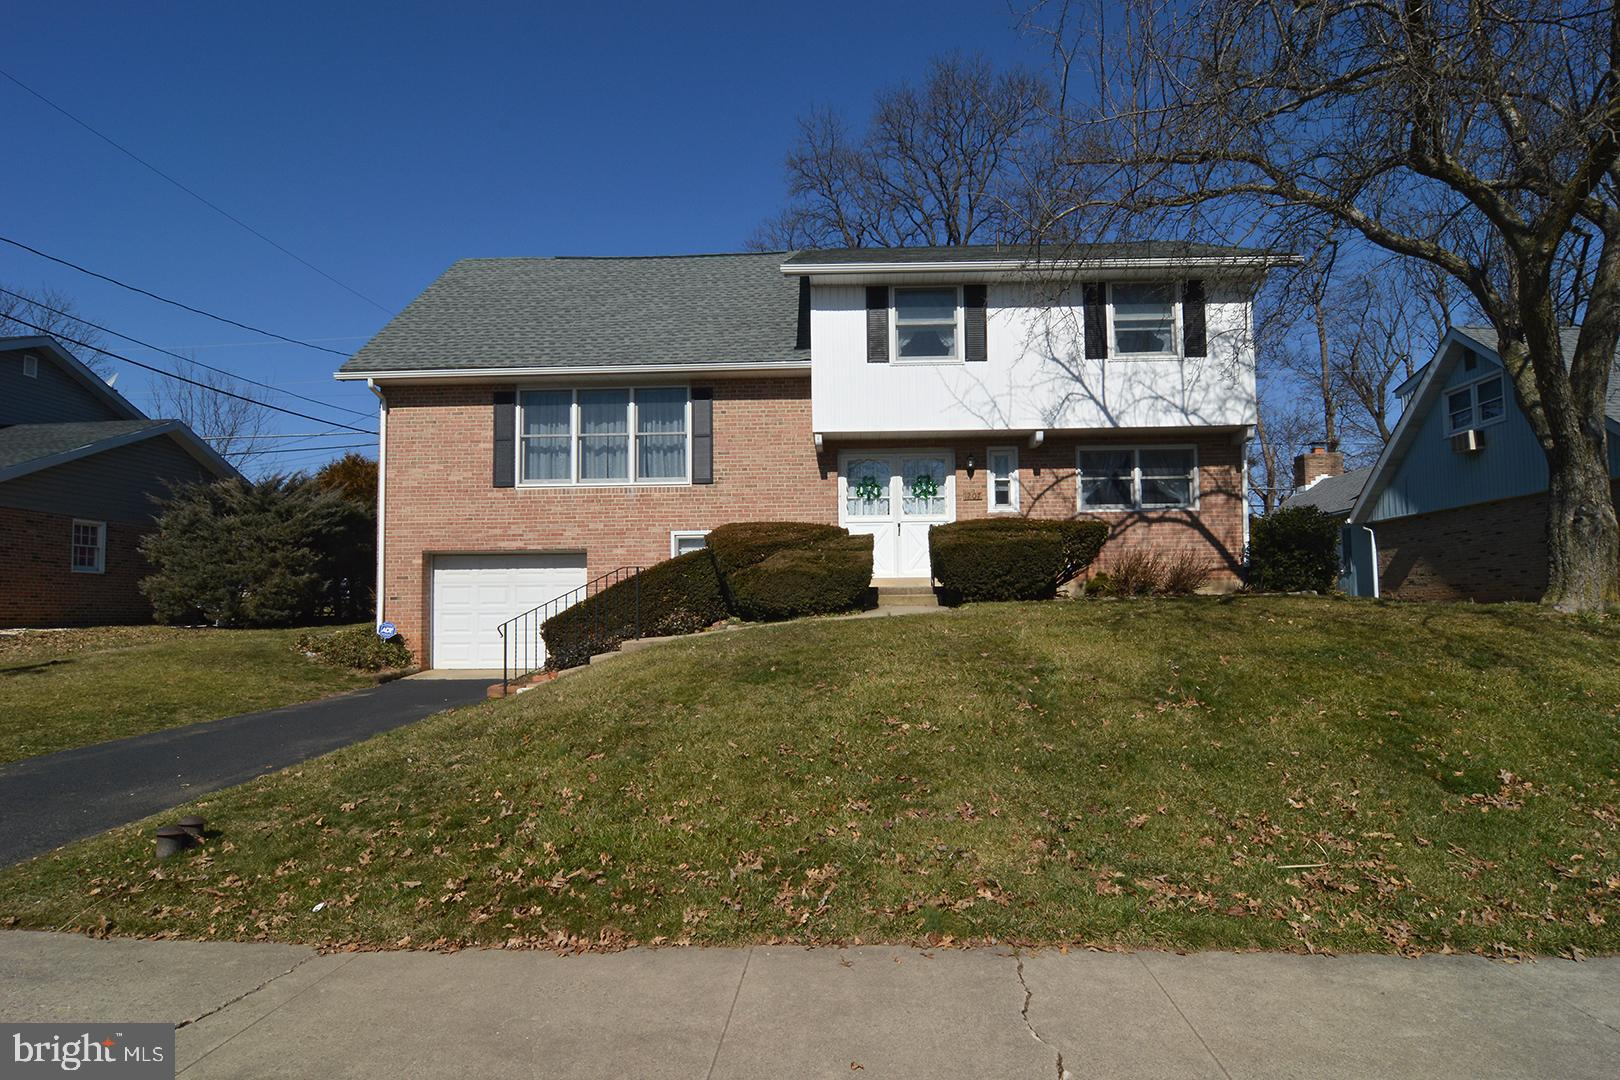 1207 WHITFIELD BOULEVARD, READING, PA 19609